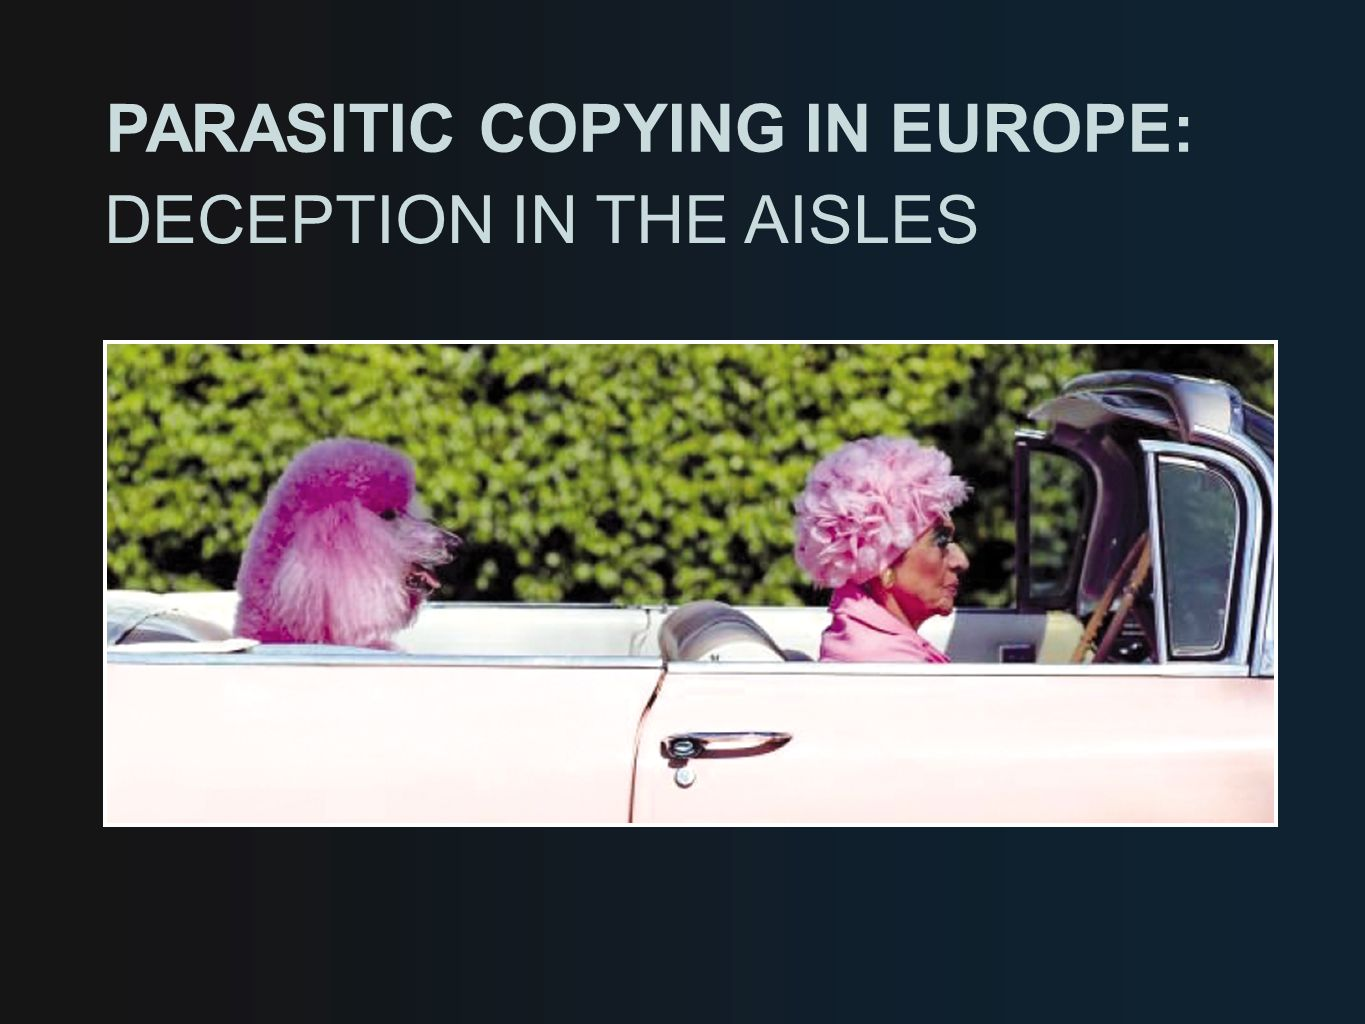 PARASITIC COPYING IN EUROPE: DECEPTION IN THE AISLES